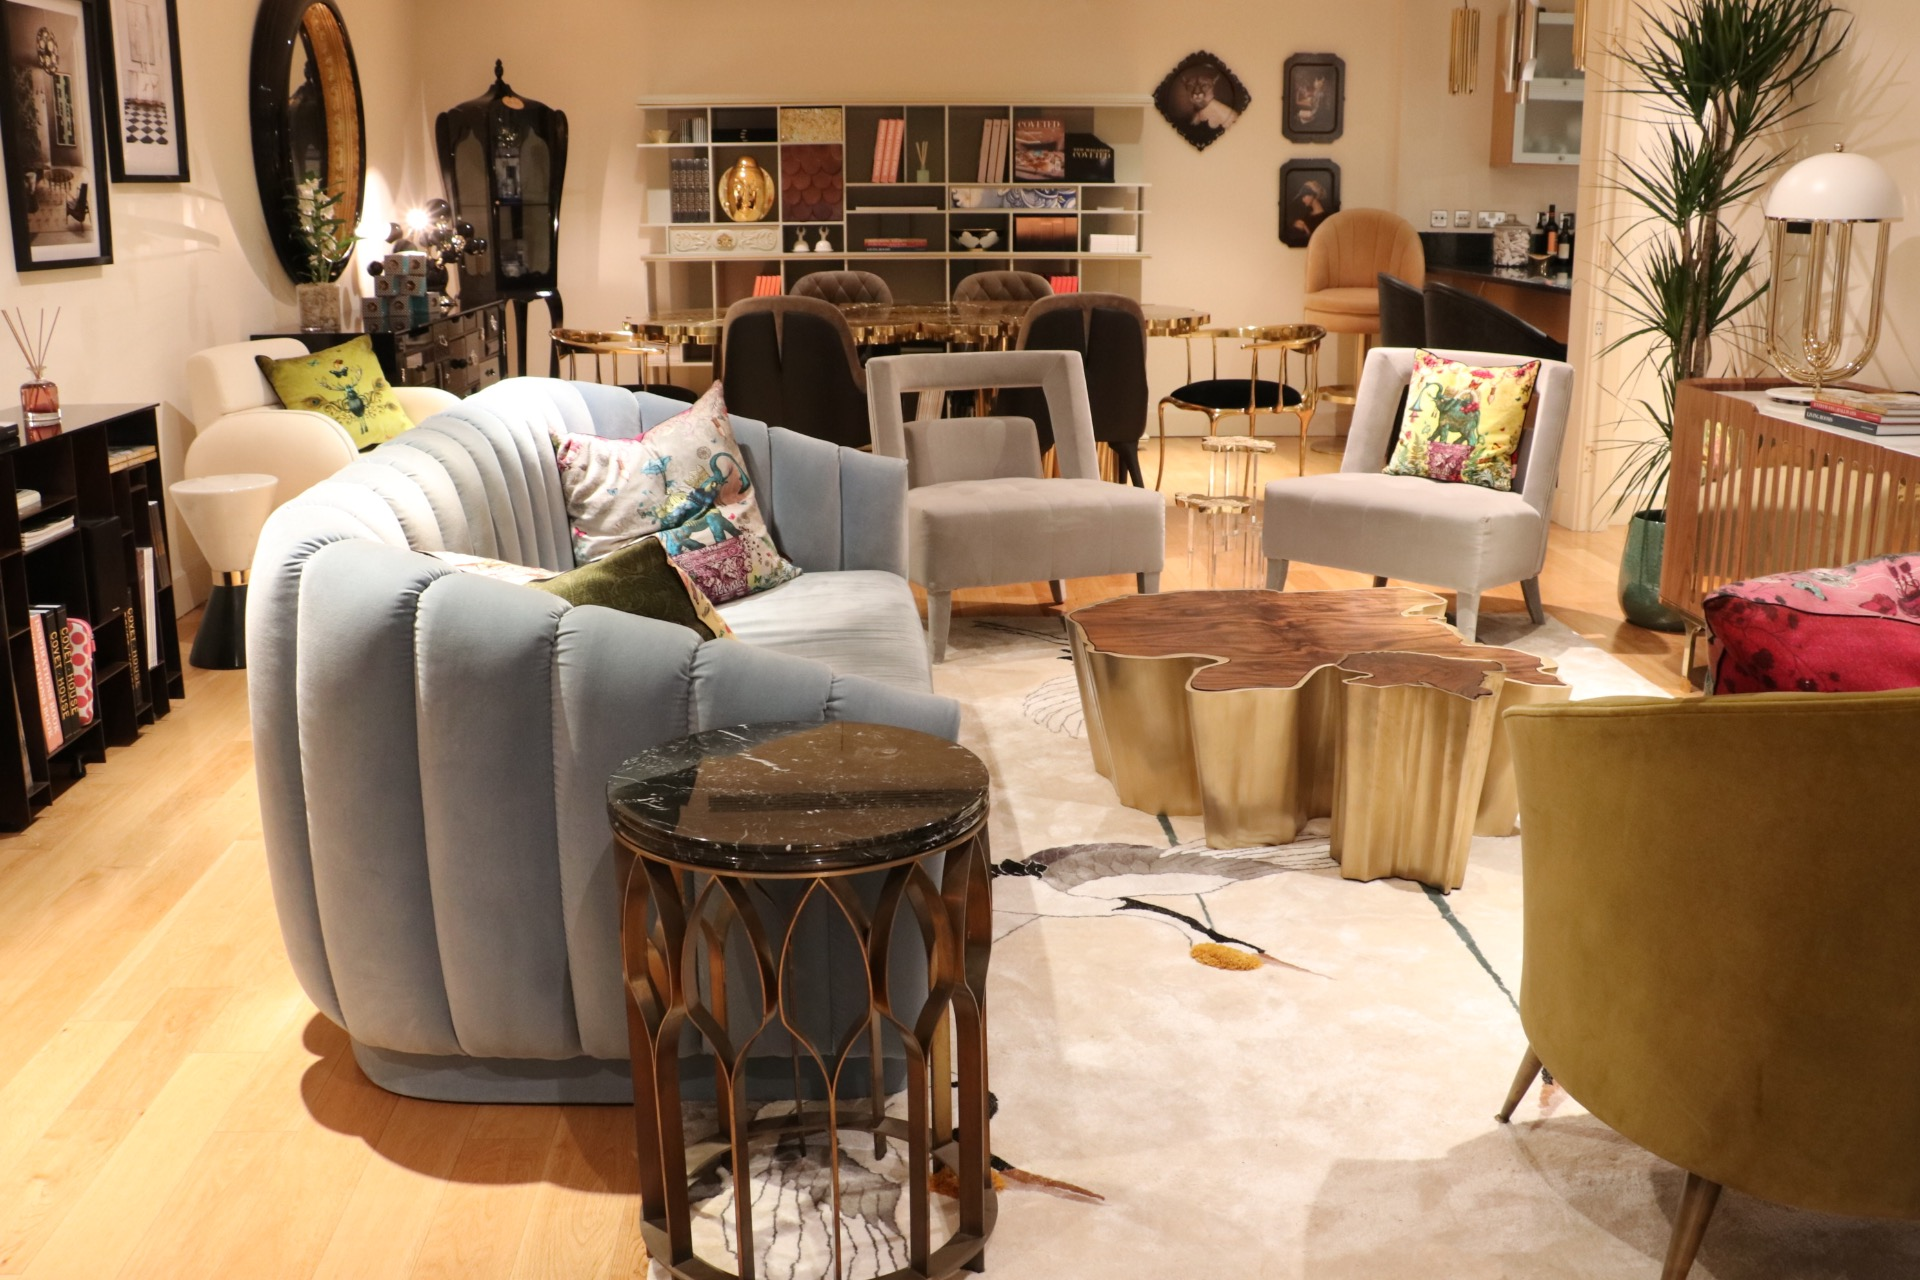 Covet London: Get An Amazing Design Experience